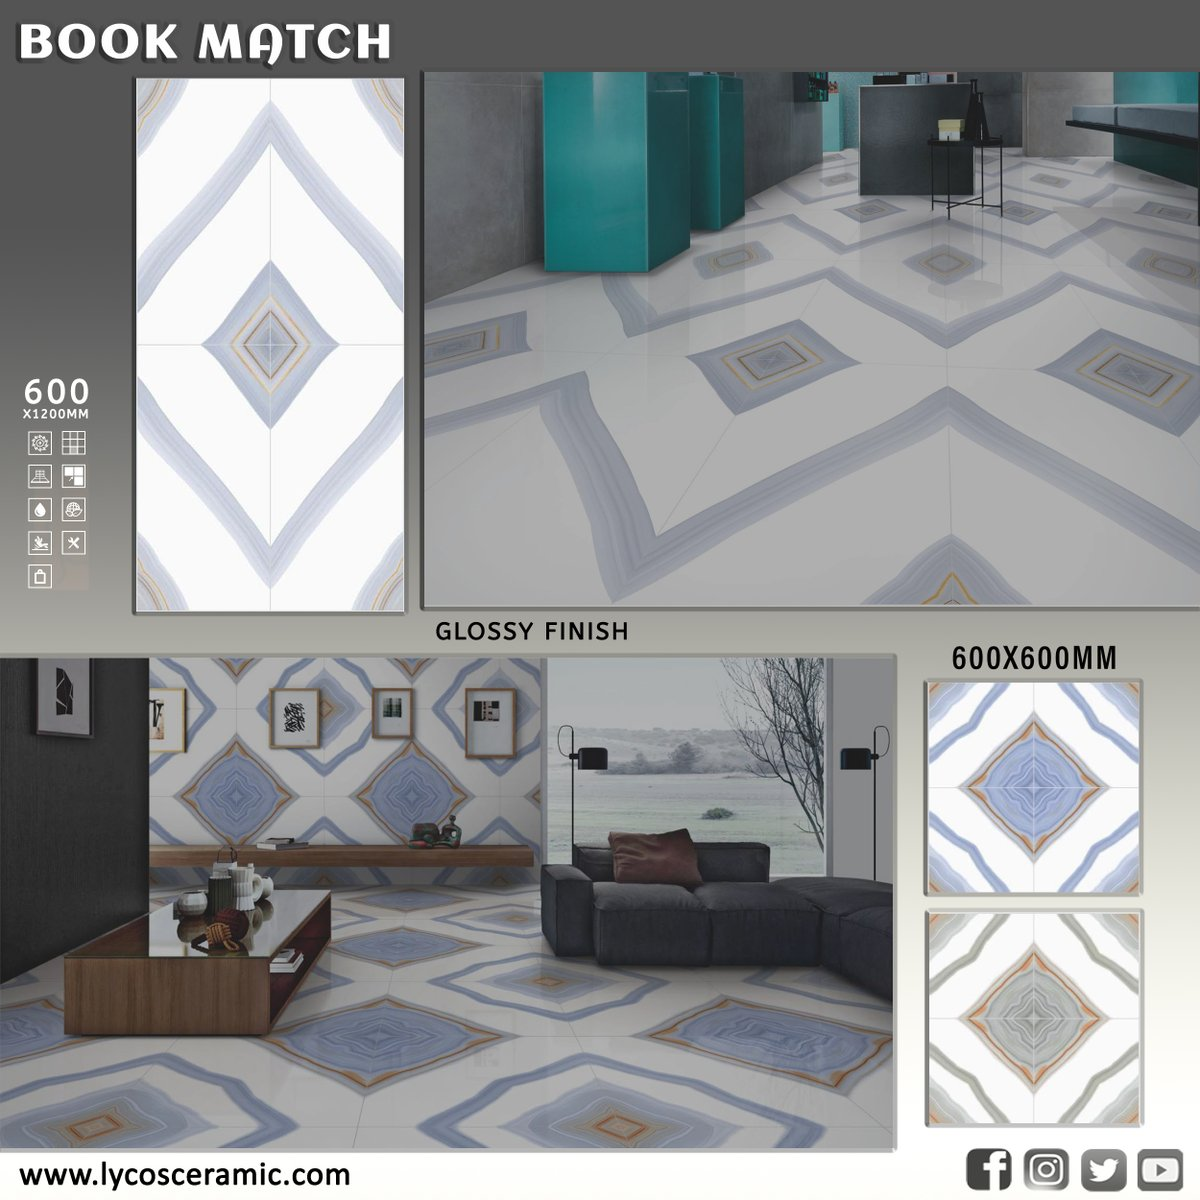 One aim, EXCELLENCE. Porcelain Wall & Floor Tile Tile Size: 60x60 CM   60x120 CM More designs: http://www.lycosceramic.com/tile   For Catalogue Email: export@lycosceramic.com  #PorcelainTile #GlossyFinish #VitrifiedTile #TilesSizes #TileDesign #WallTiles #FloorTiles #LycosCeramic #Lycospic.twitter.com/wgPFZwZfW4